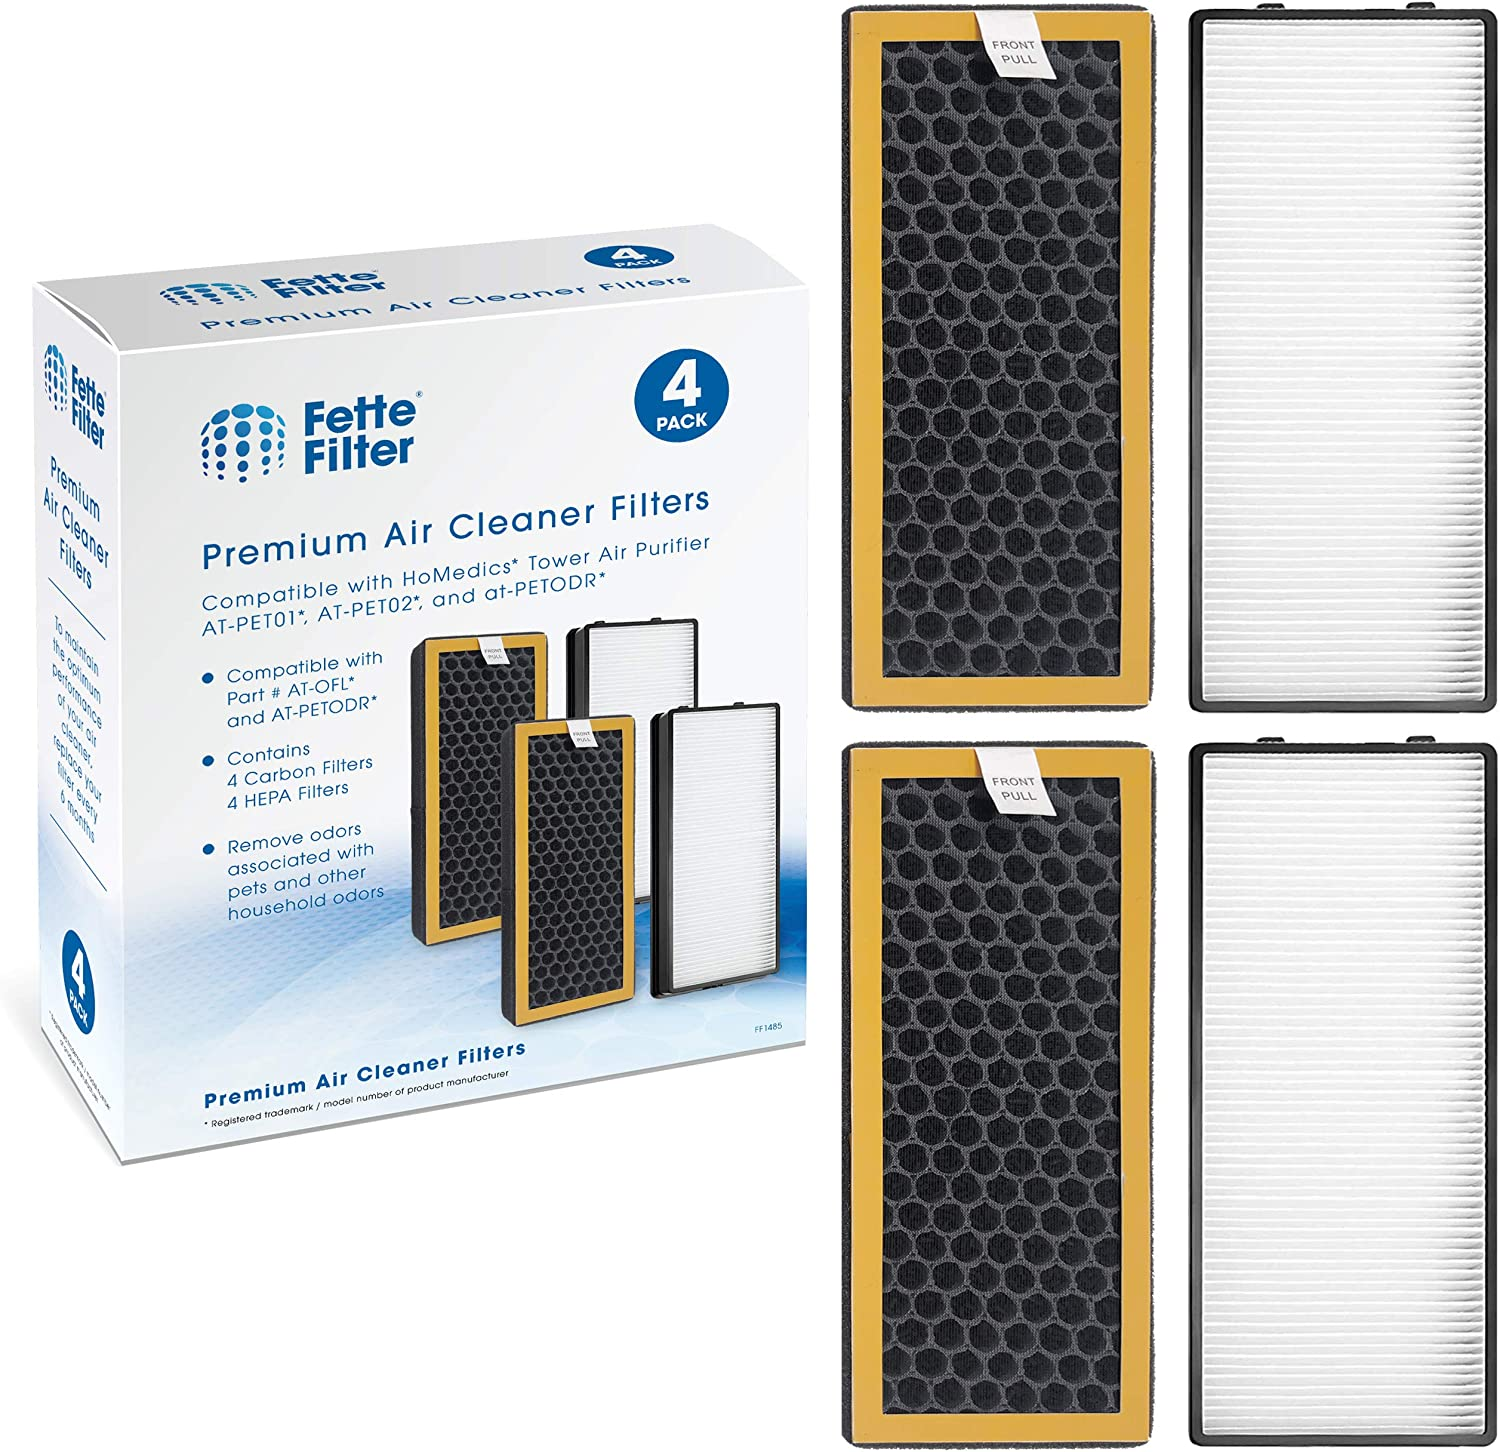 Fette Filter - 2 HEPA and 2 Activated Carbon Filters Compatible with HoMedics TotalClean PetPlus. Compare to Part # AT-PET01, AT-PET02, at-PETODR. Combo Pack